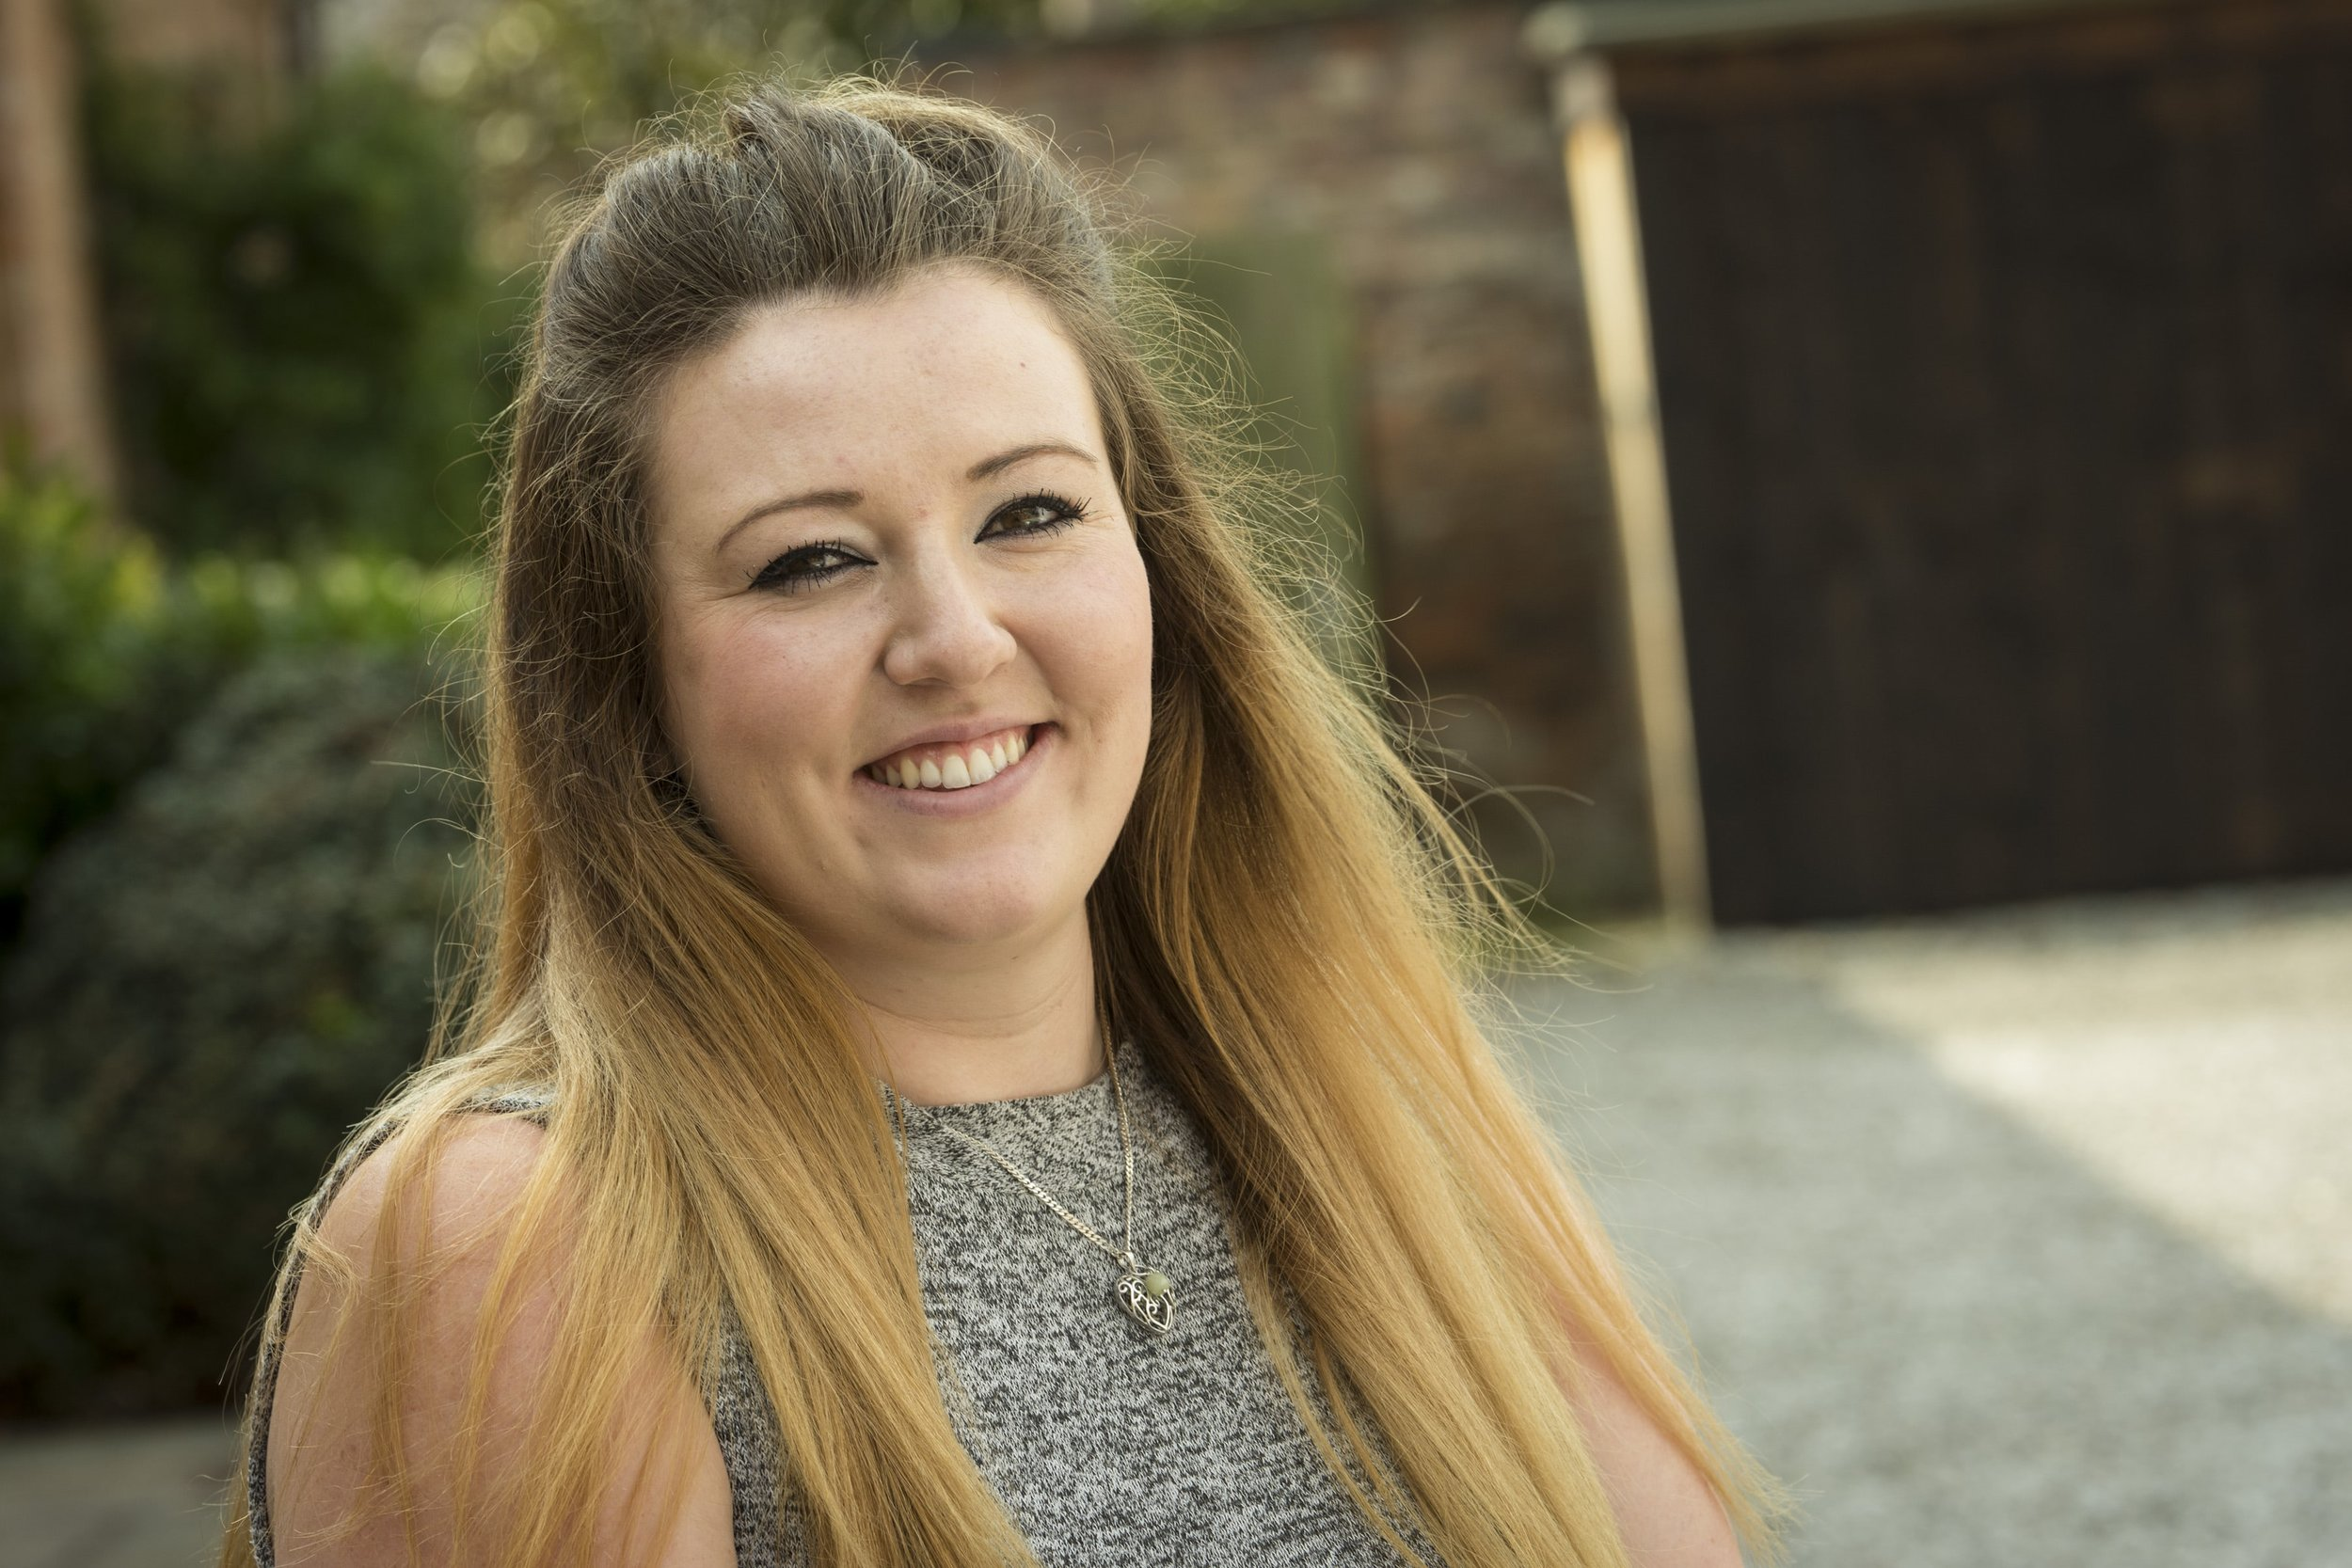 "Hannah Jones<a href=""/hannah-jones"">→</a><strong>Senior Credit Controller, North West</strong>"